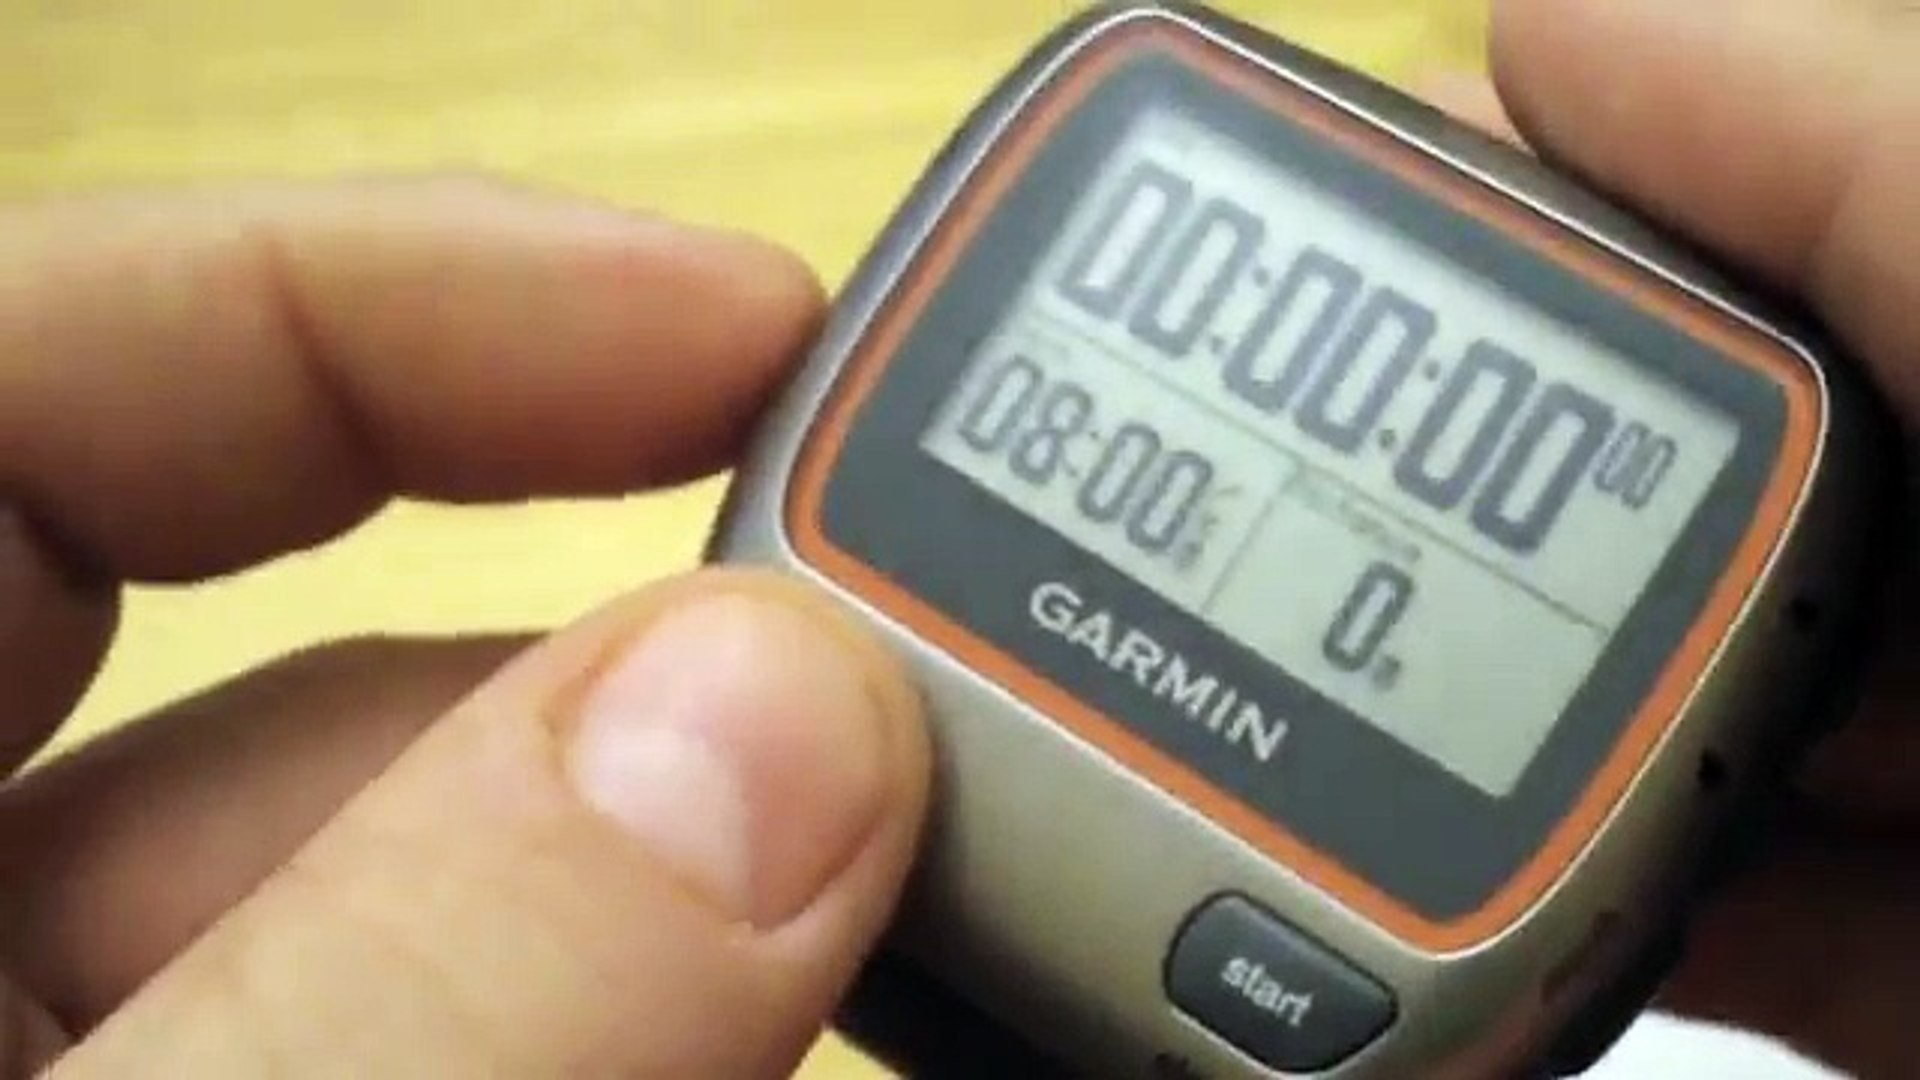 Garmin Forerunner 310 Xt How To Reset Your Device When It Is